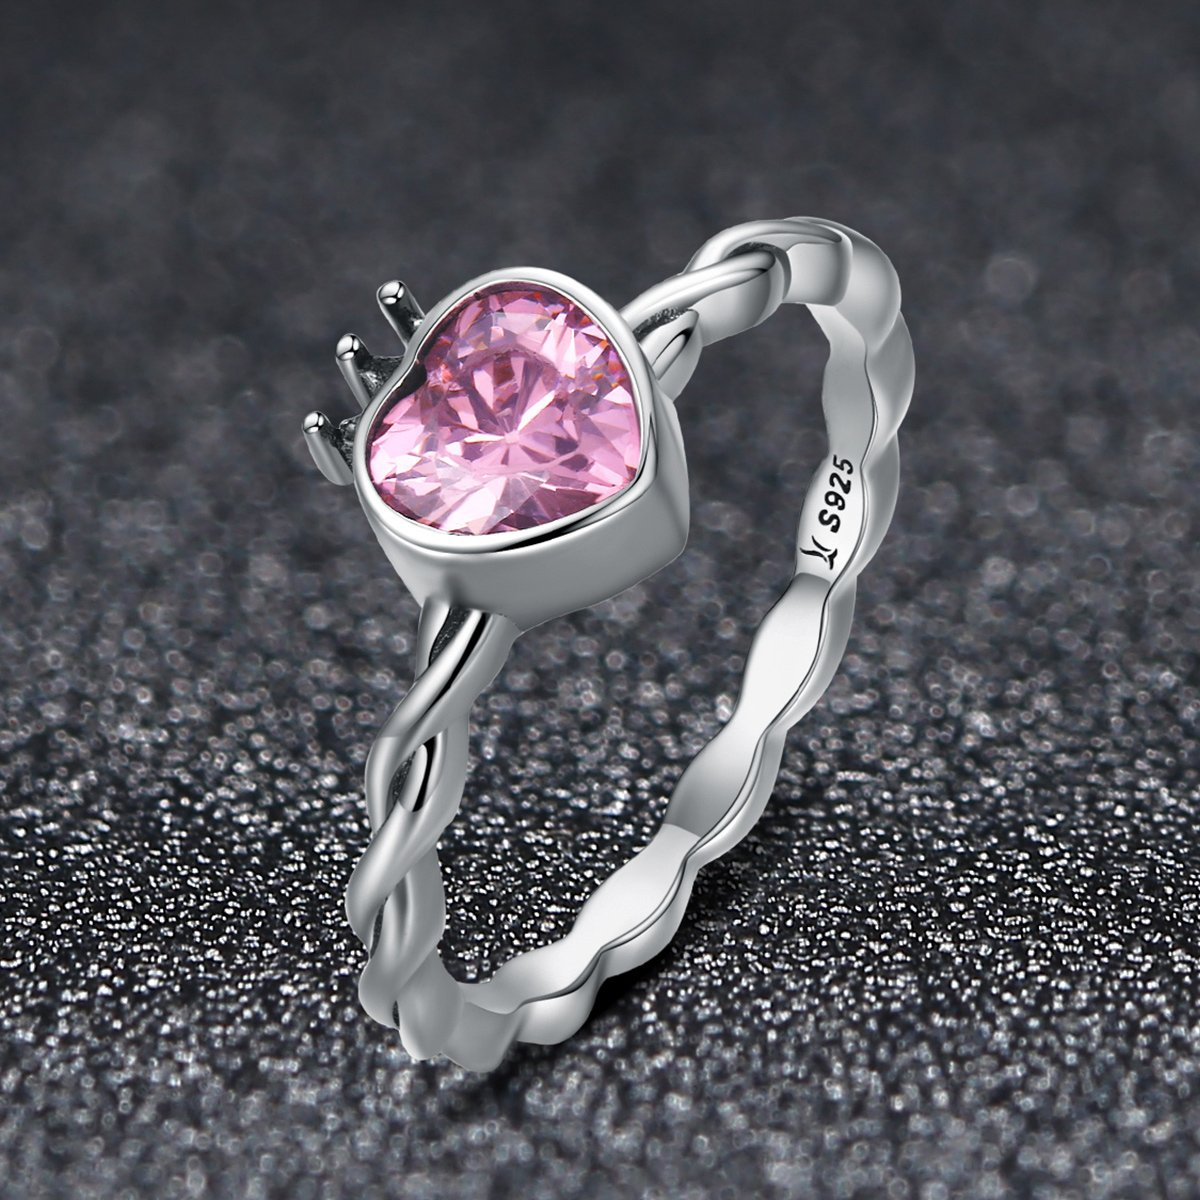 frosted multiple choice hearts Classic 925 Sterling Silver wedding band ring